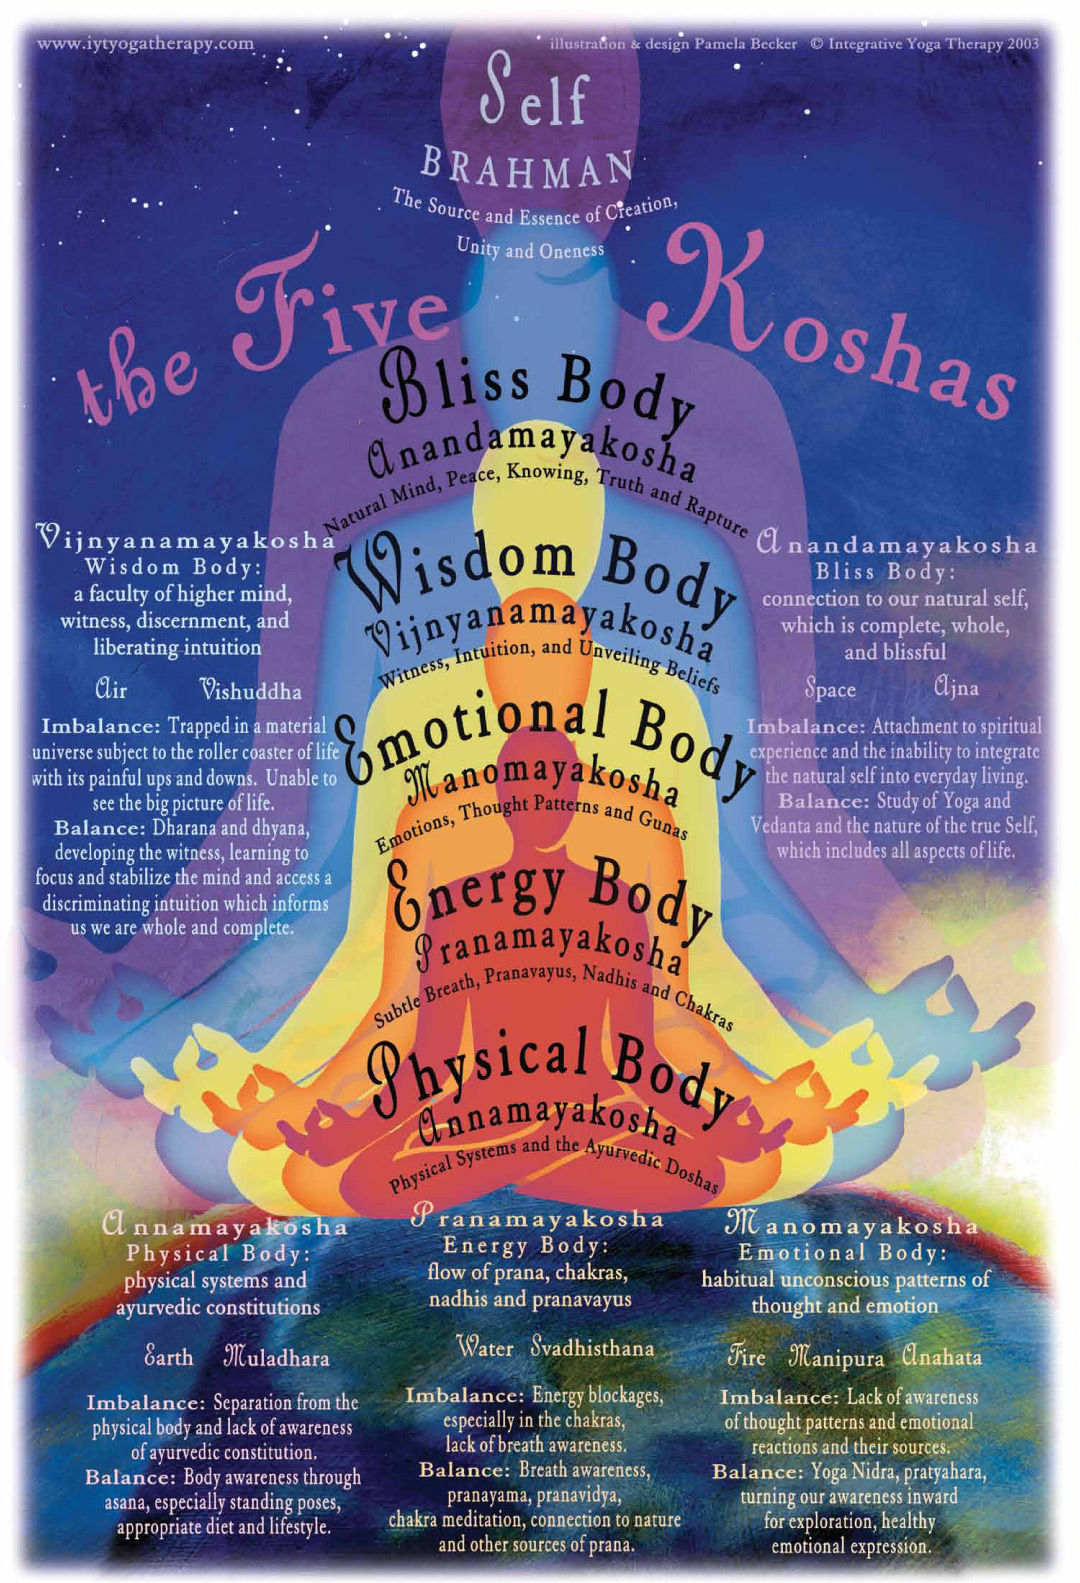 The Five Koshas and the Five-Layered Self: a Comparison